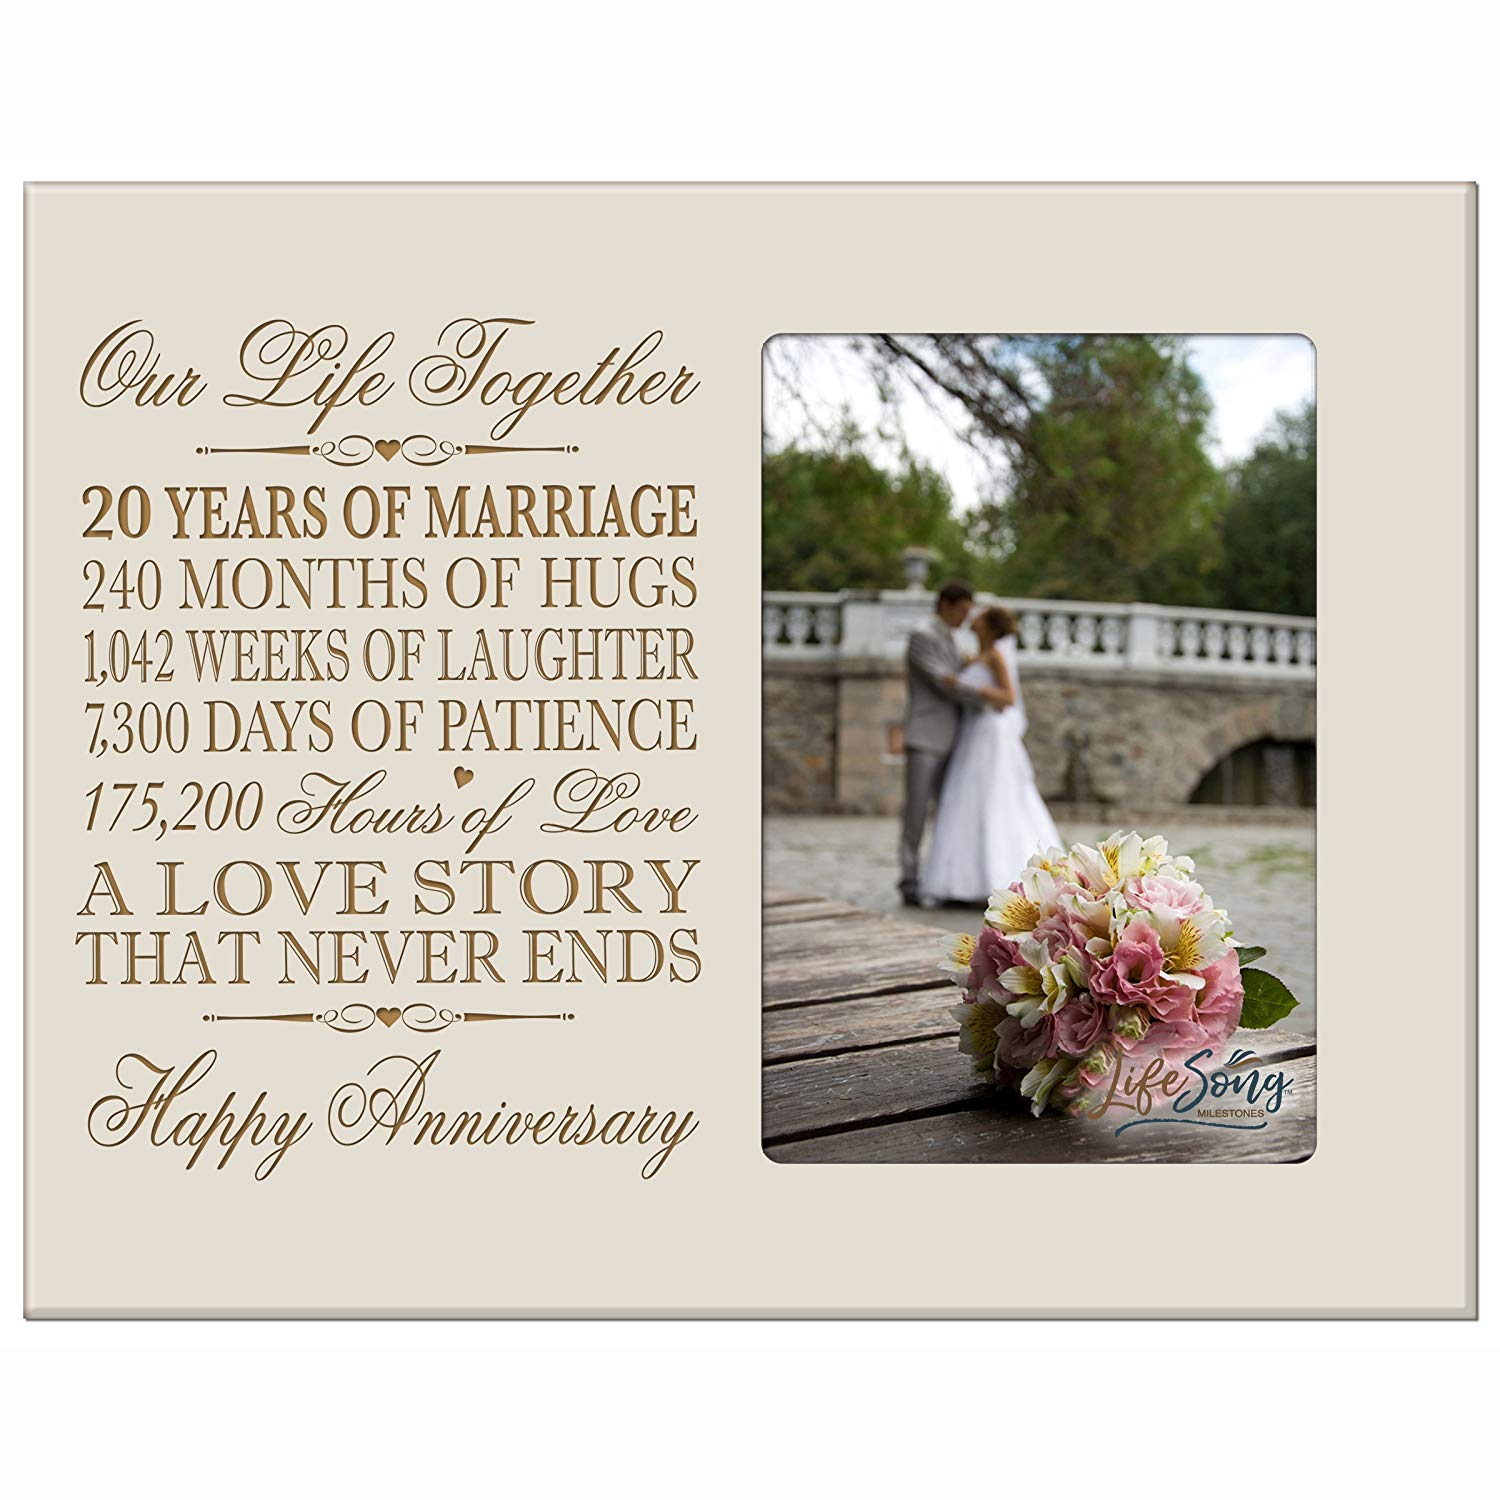 21st Wedding Anniversary Gifts For Her: Cheap 21st Wedding Anniversary Gift, Find 21st Wedding